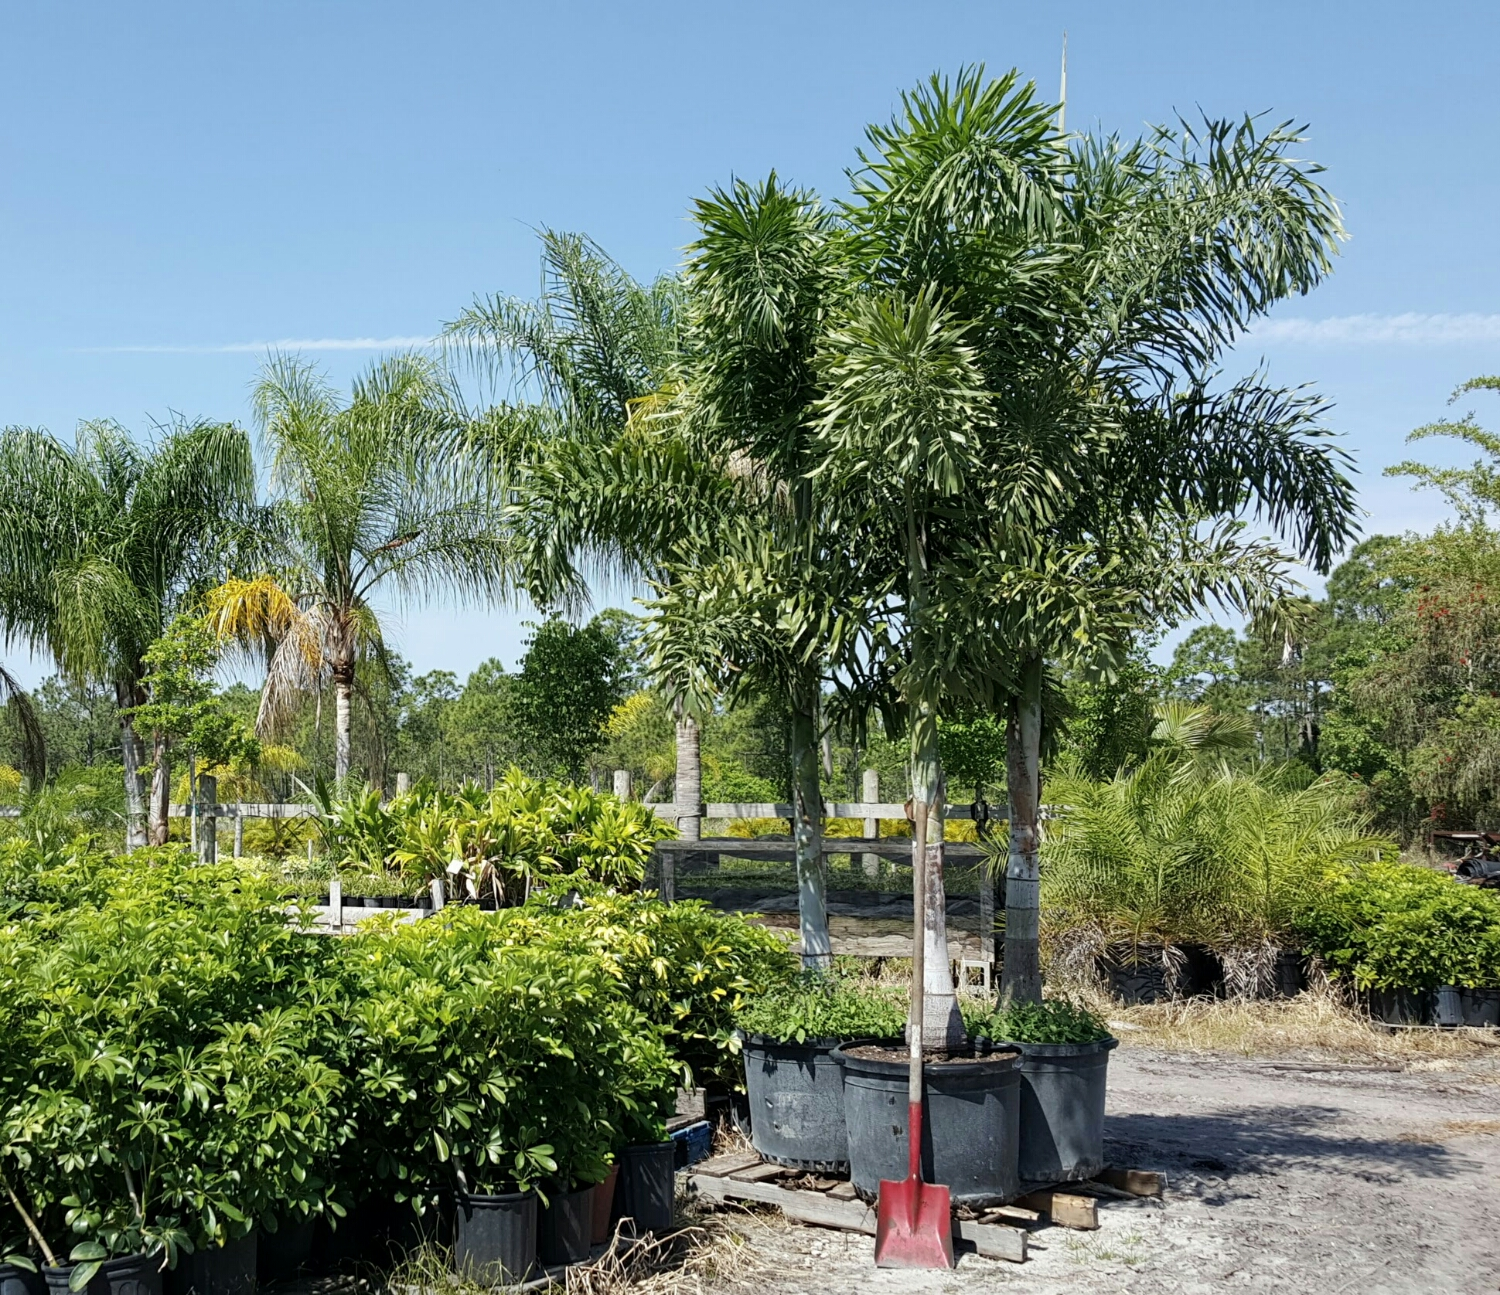 25 gallon Foxtail Palms, single trunks, about 11 feet planted overall height